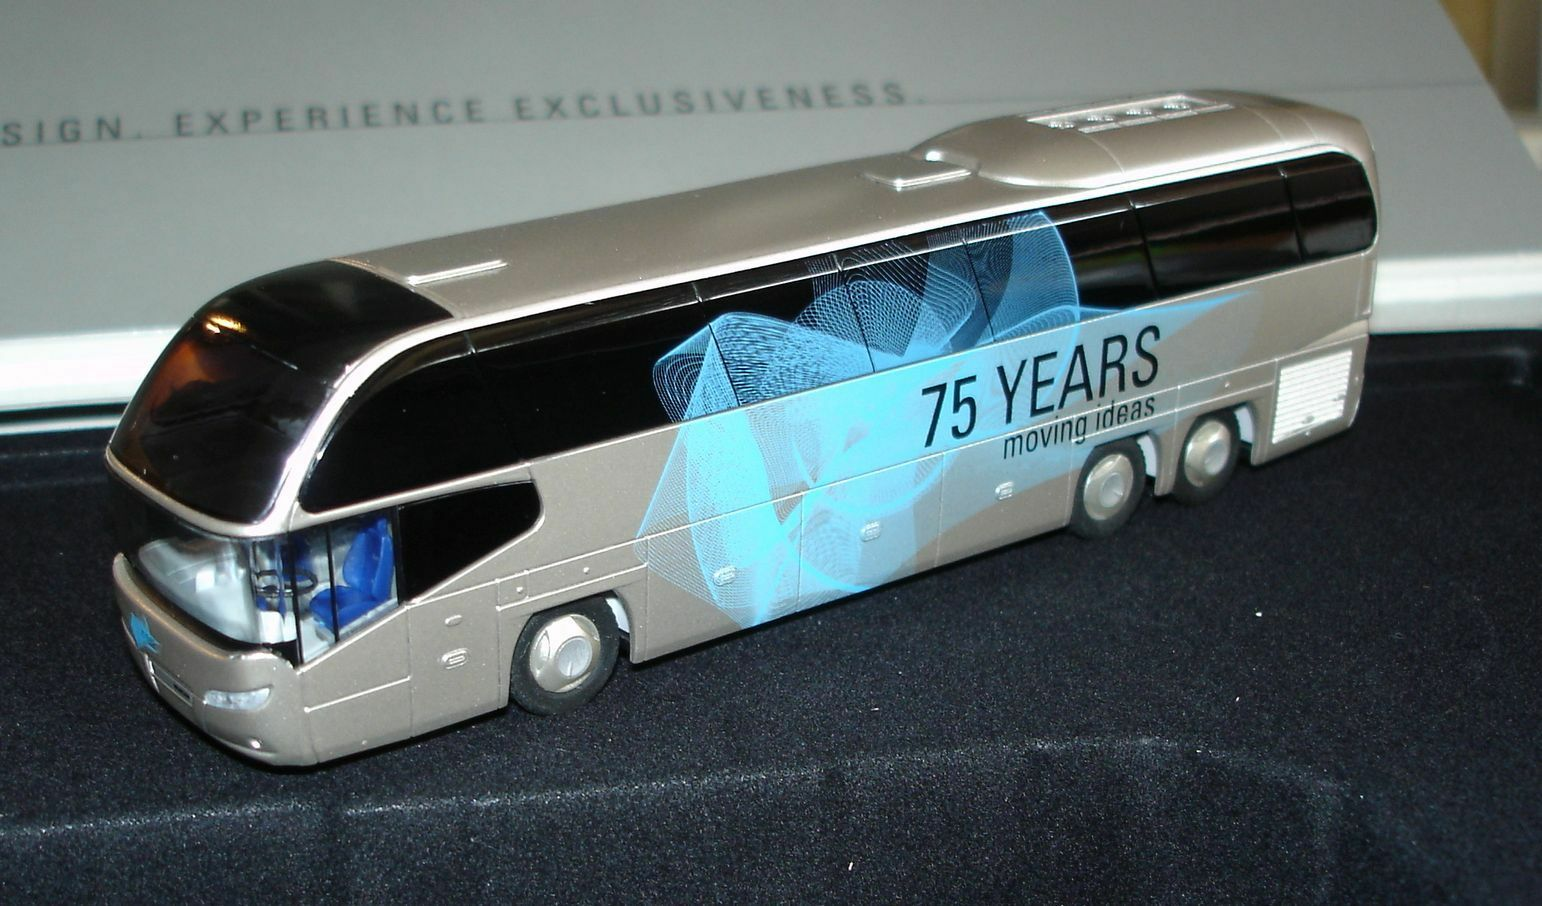 Rietze Neoplan Cityliner avec pin  cahier milesstones  75 Years Moving ideas NEUF